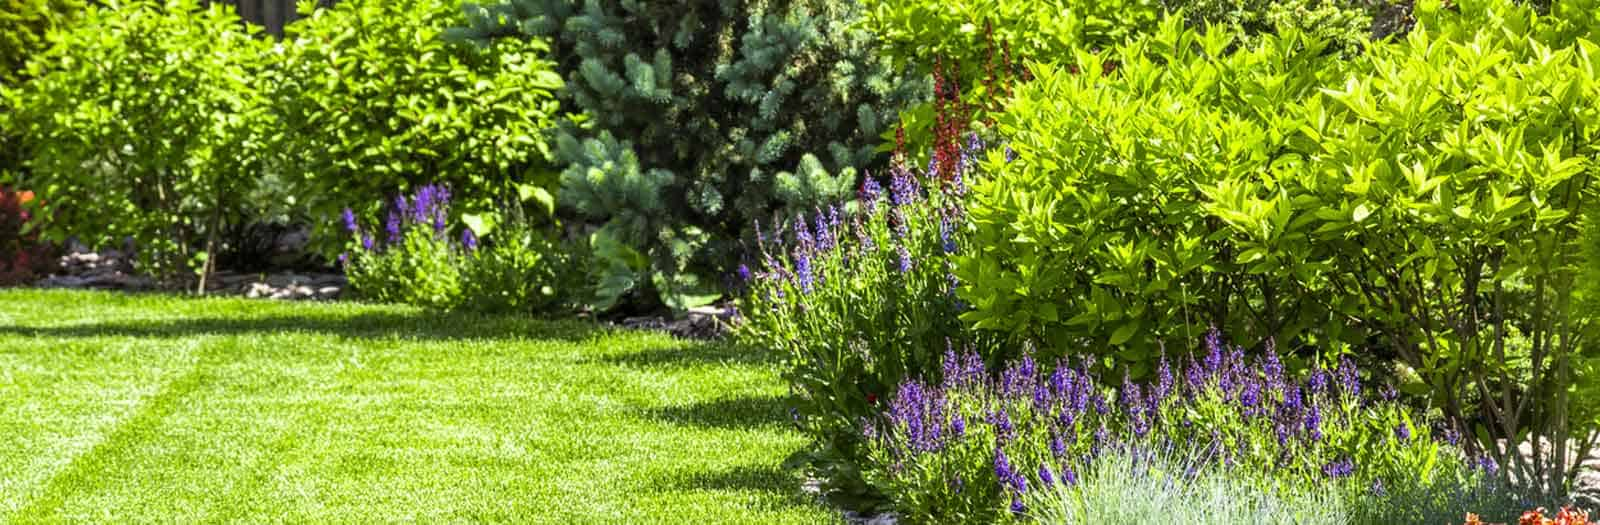 yard full of spring shrubs that are in need of pruning